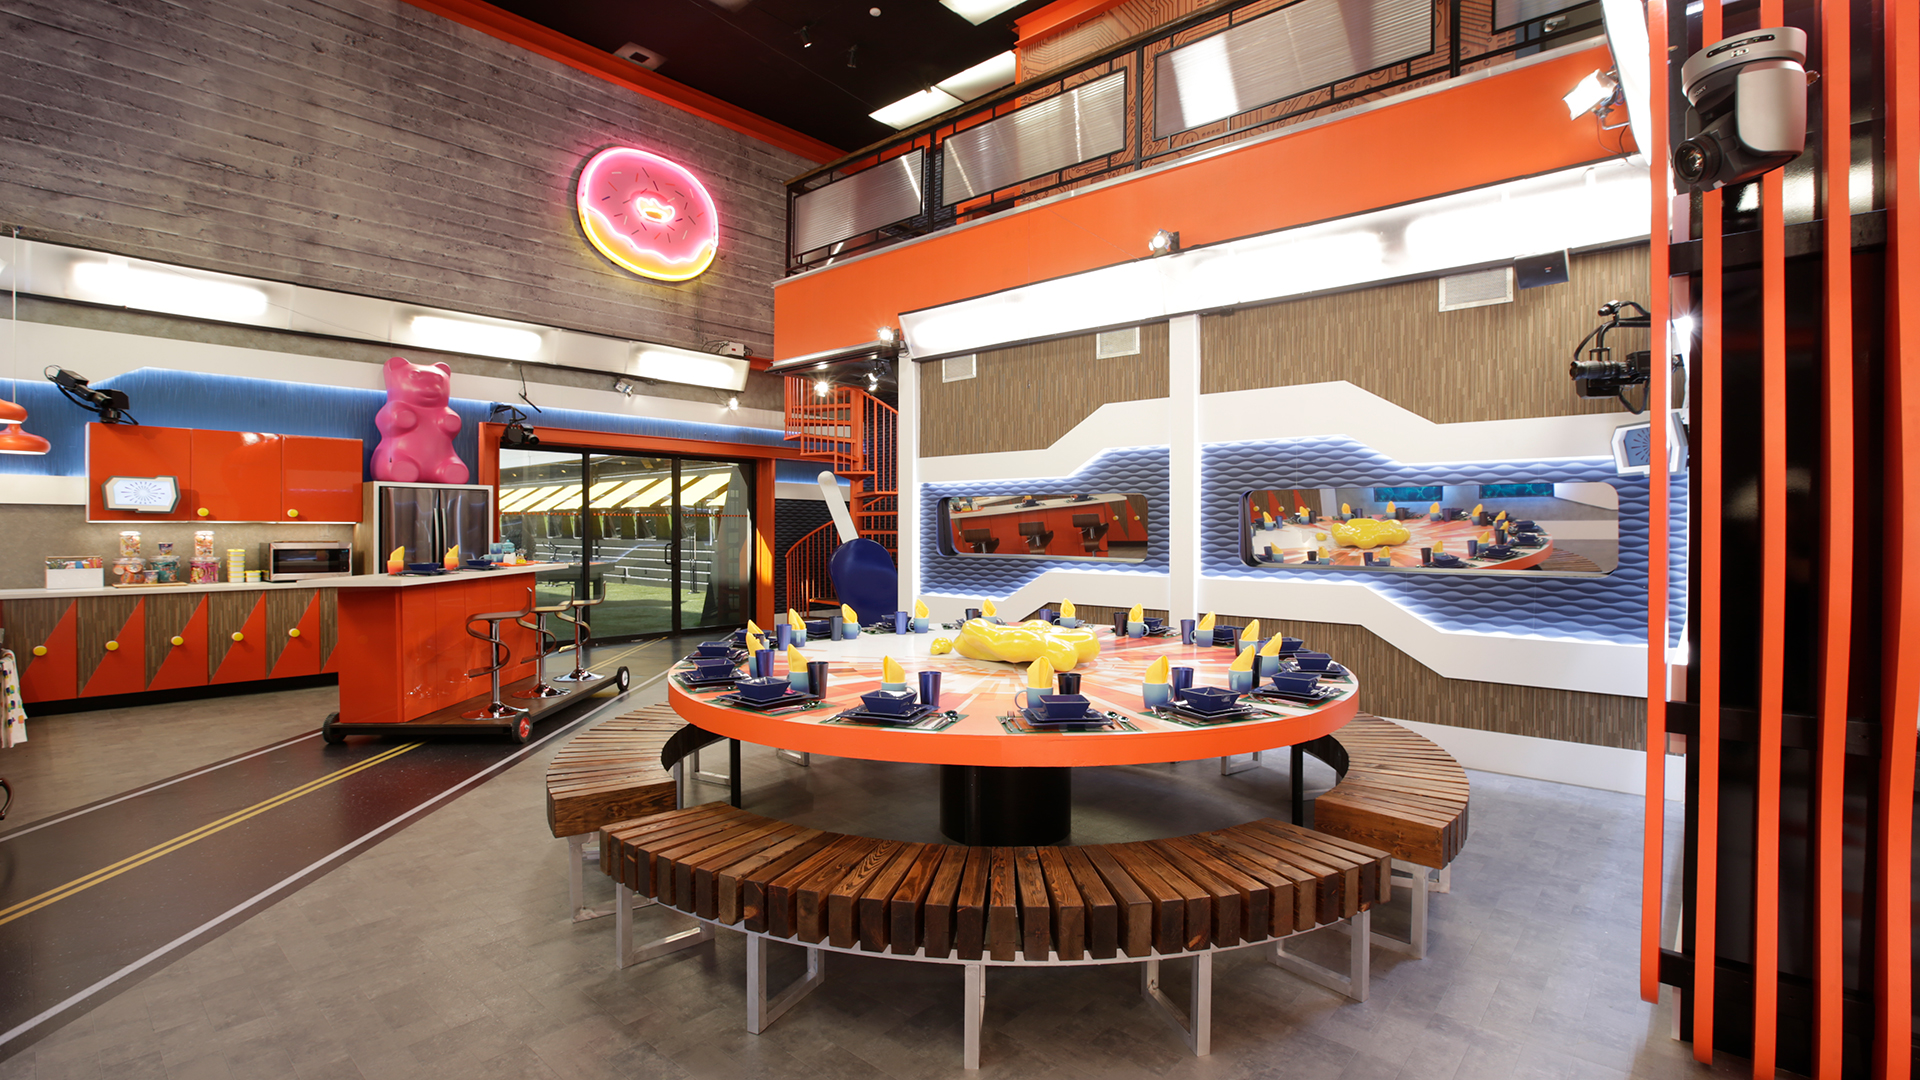 High tech takes over the Big Brother house with a Silicon Valley theme.